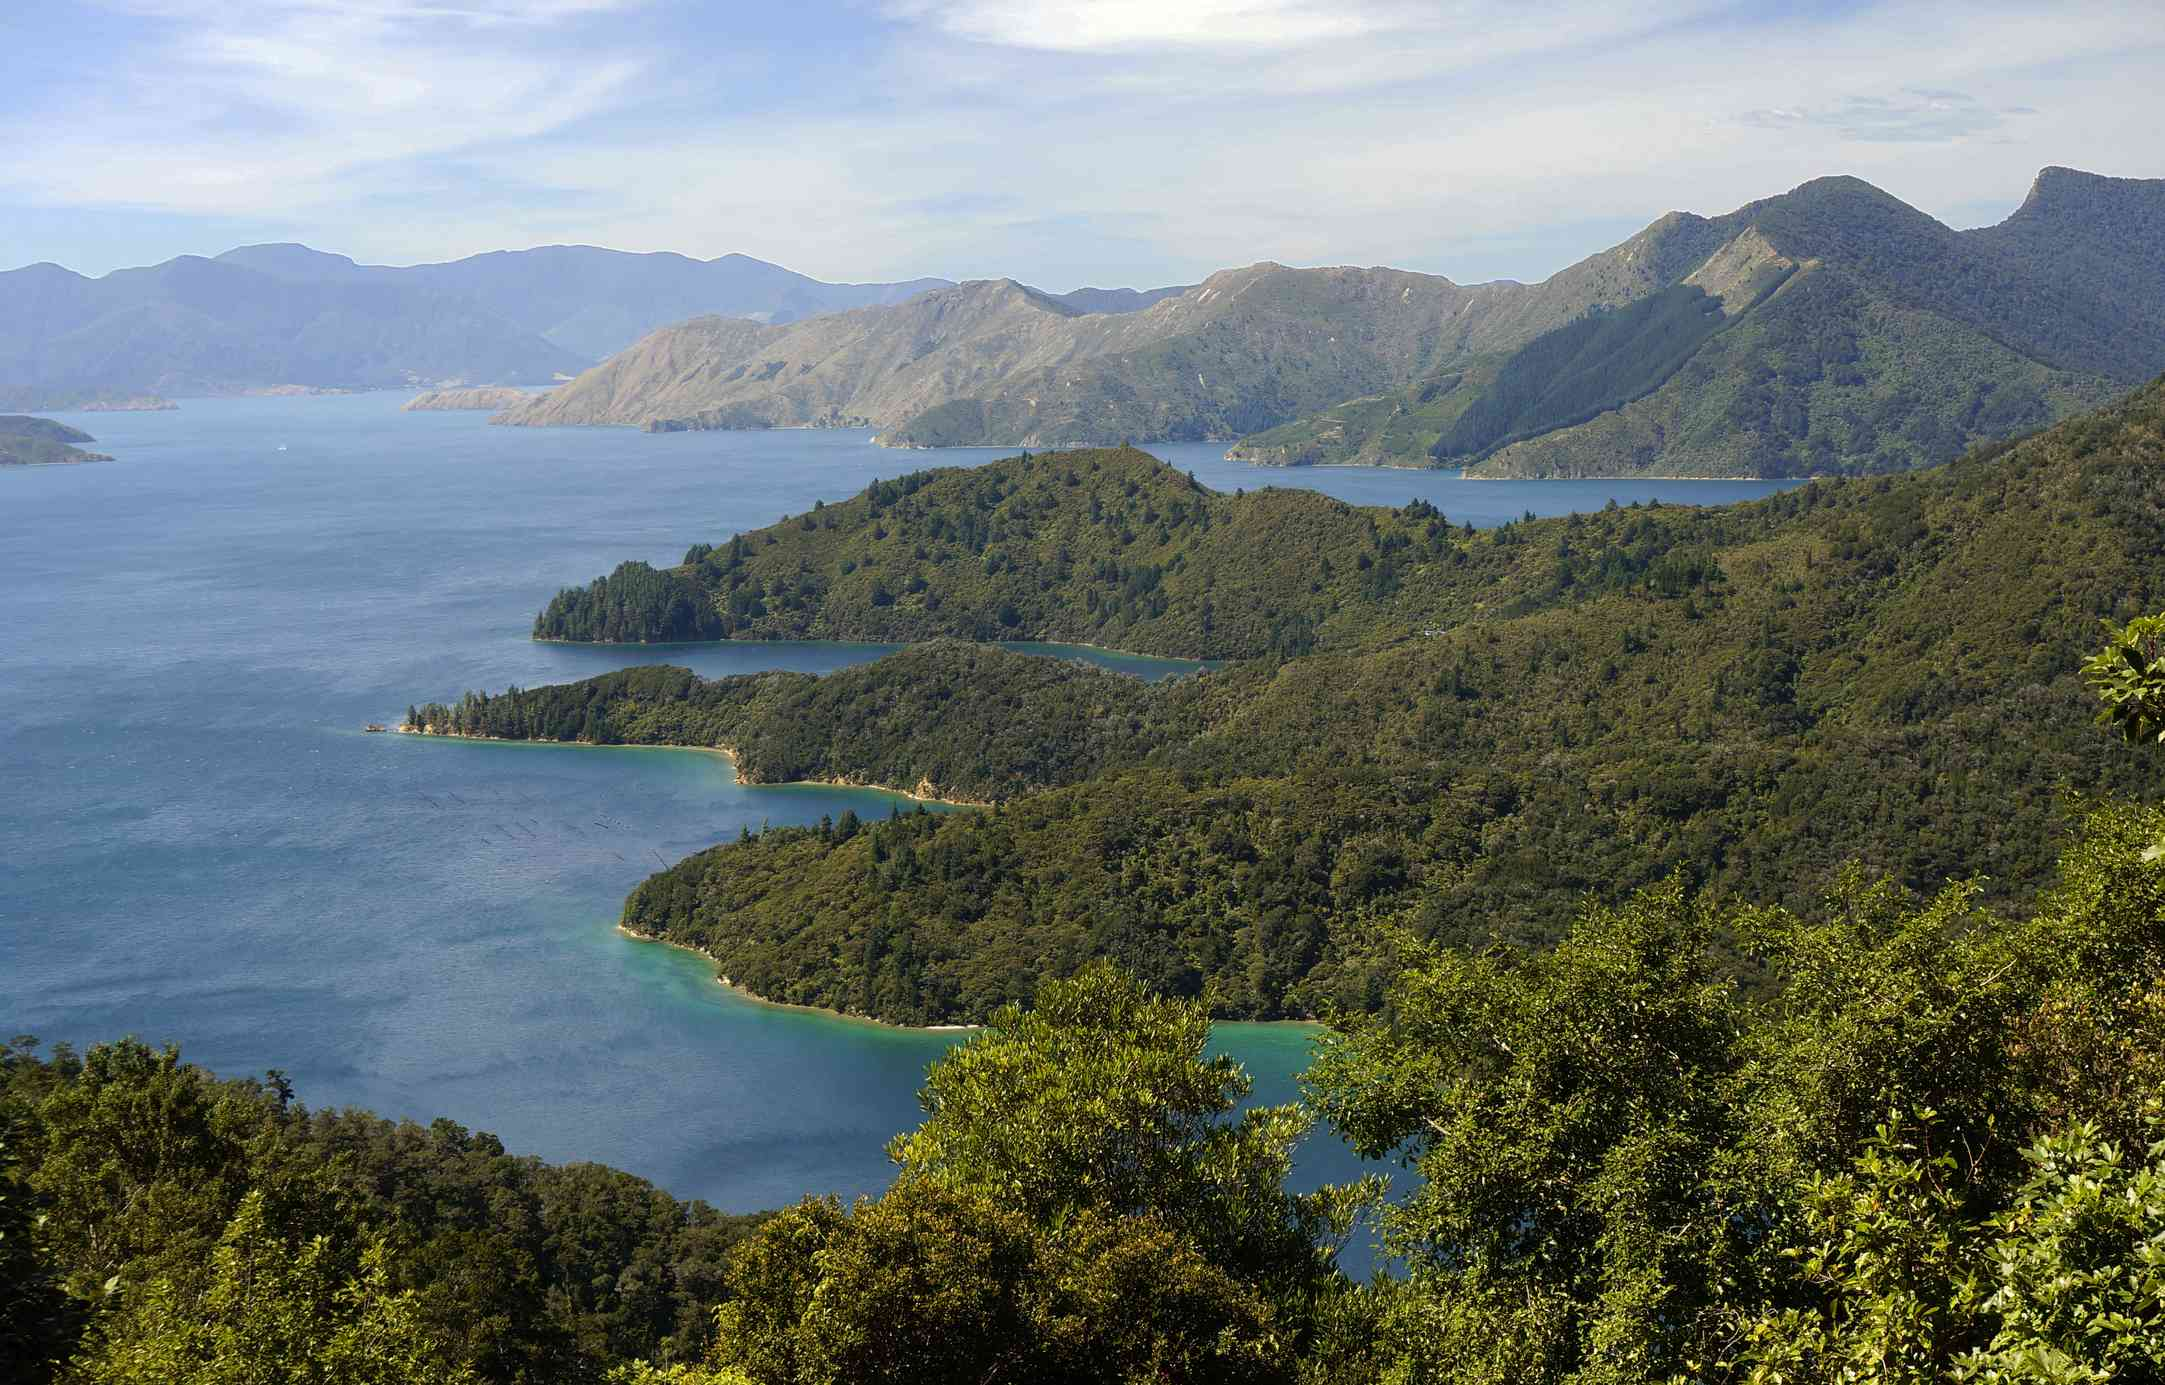 forested mountainous headlands surrounded by blue sea